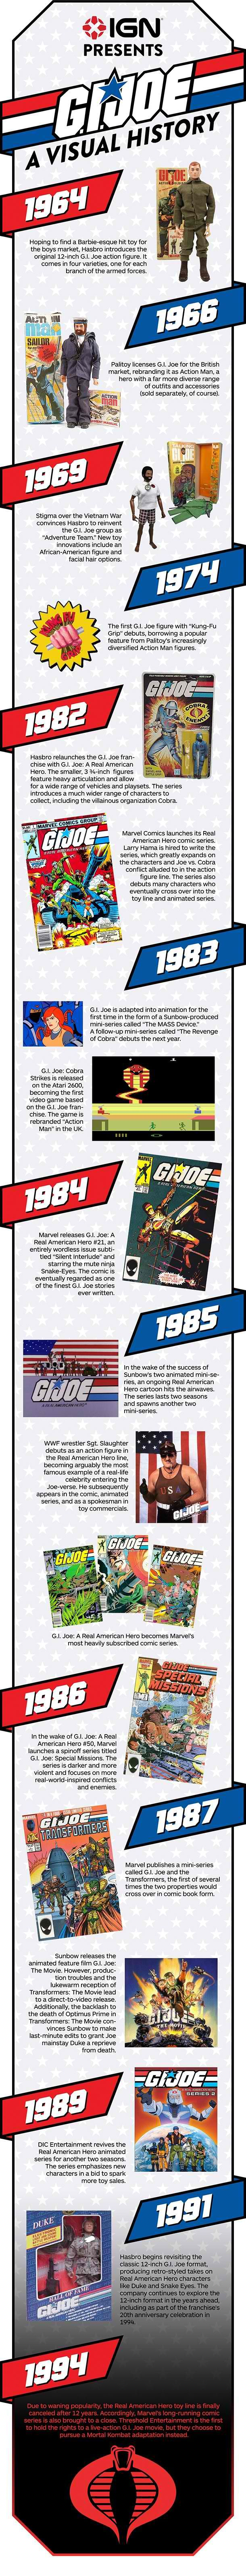 GI Joe A Visual History - infographic #Nostalgia #Toys #ActionFigures